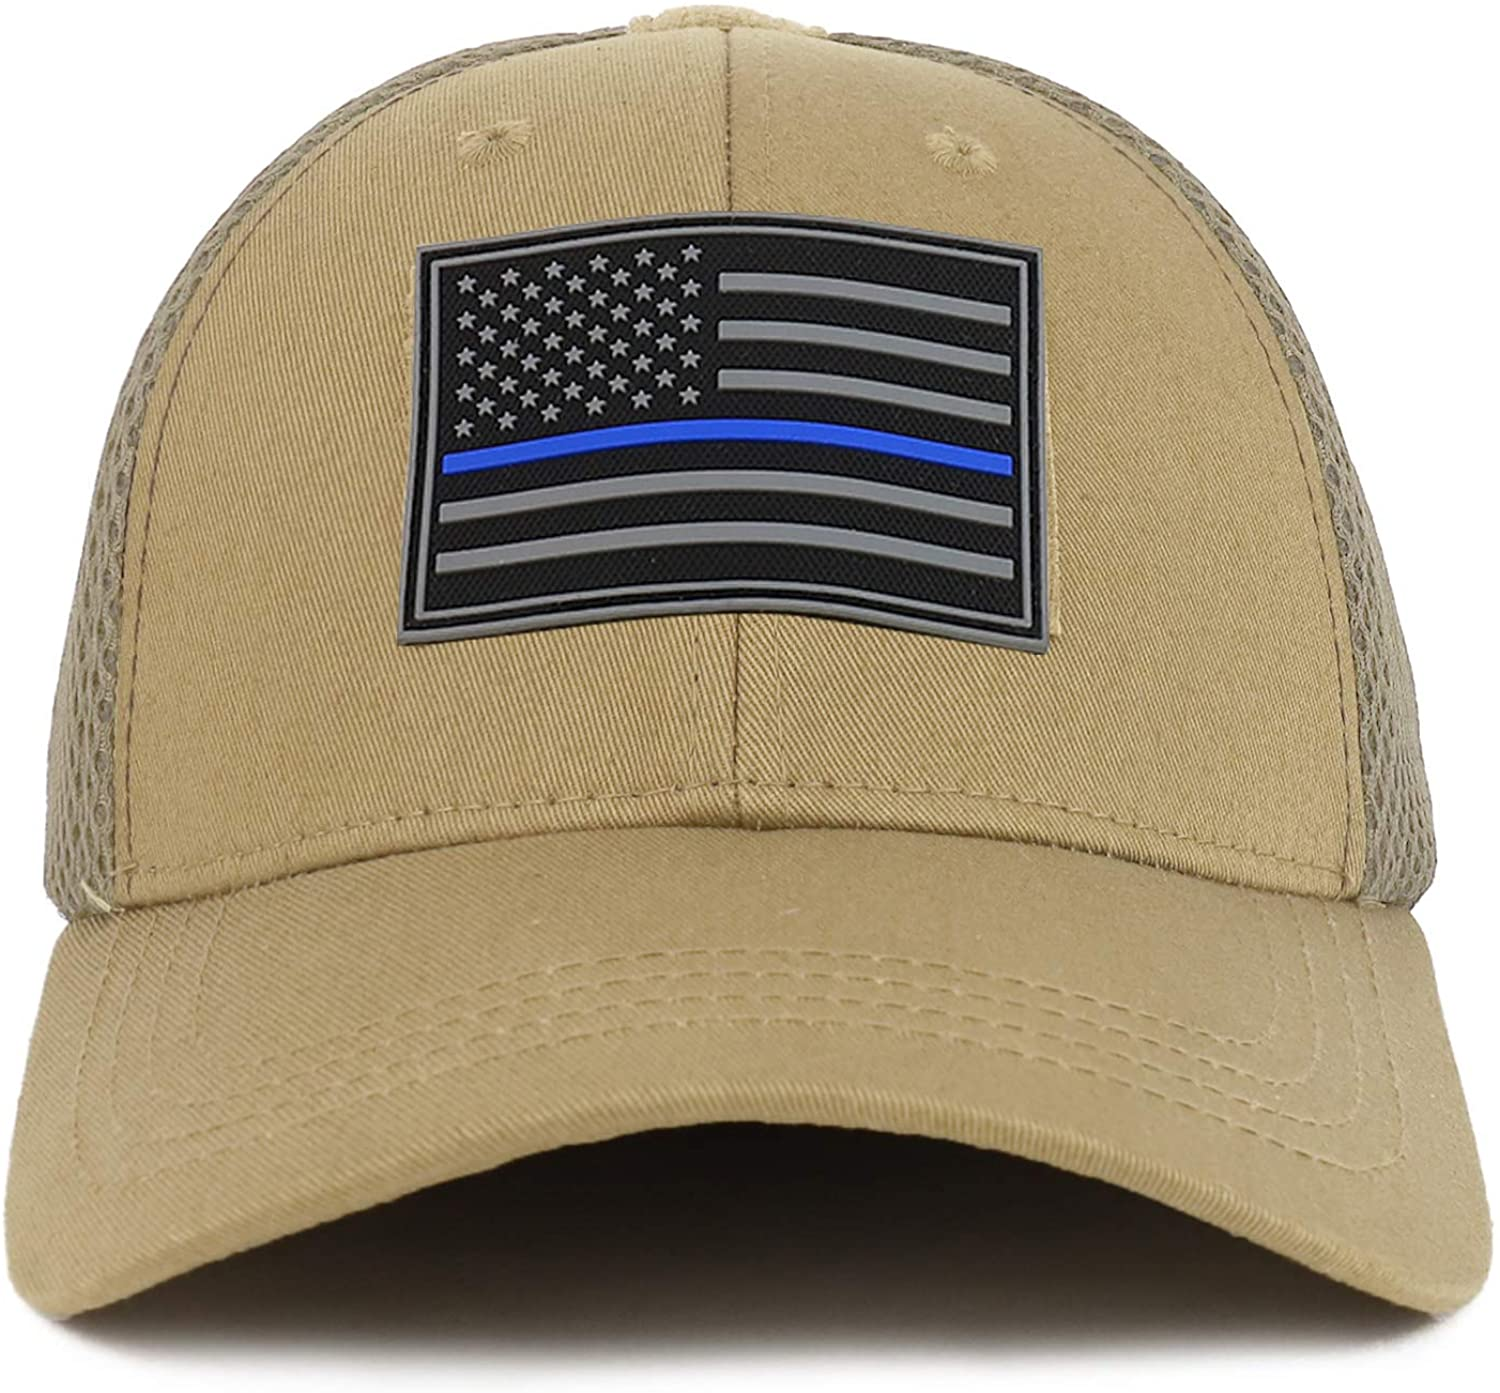 Armycrew American Flag Black Tactical Embroidered Patch Air Mesh Flex Cap